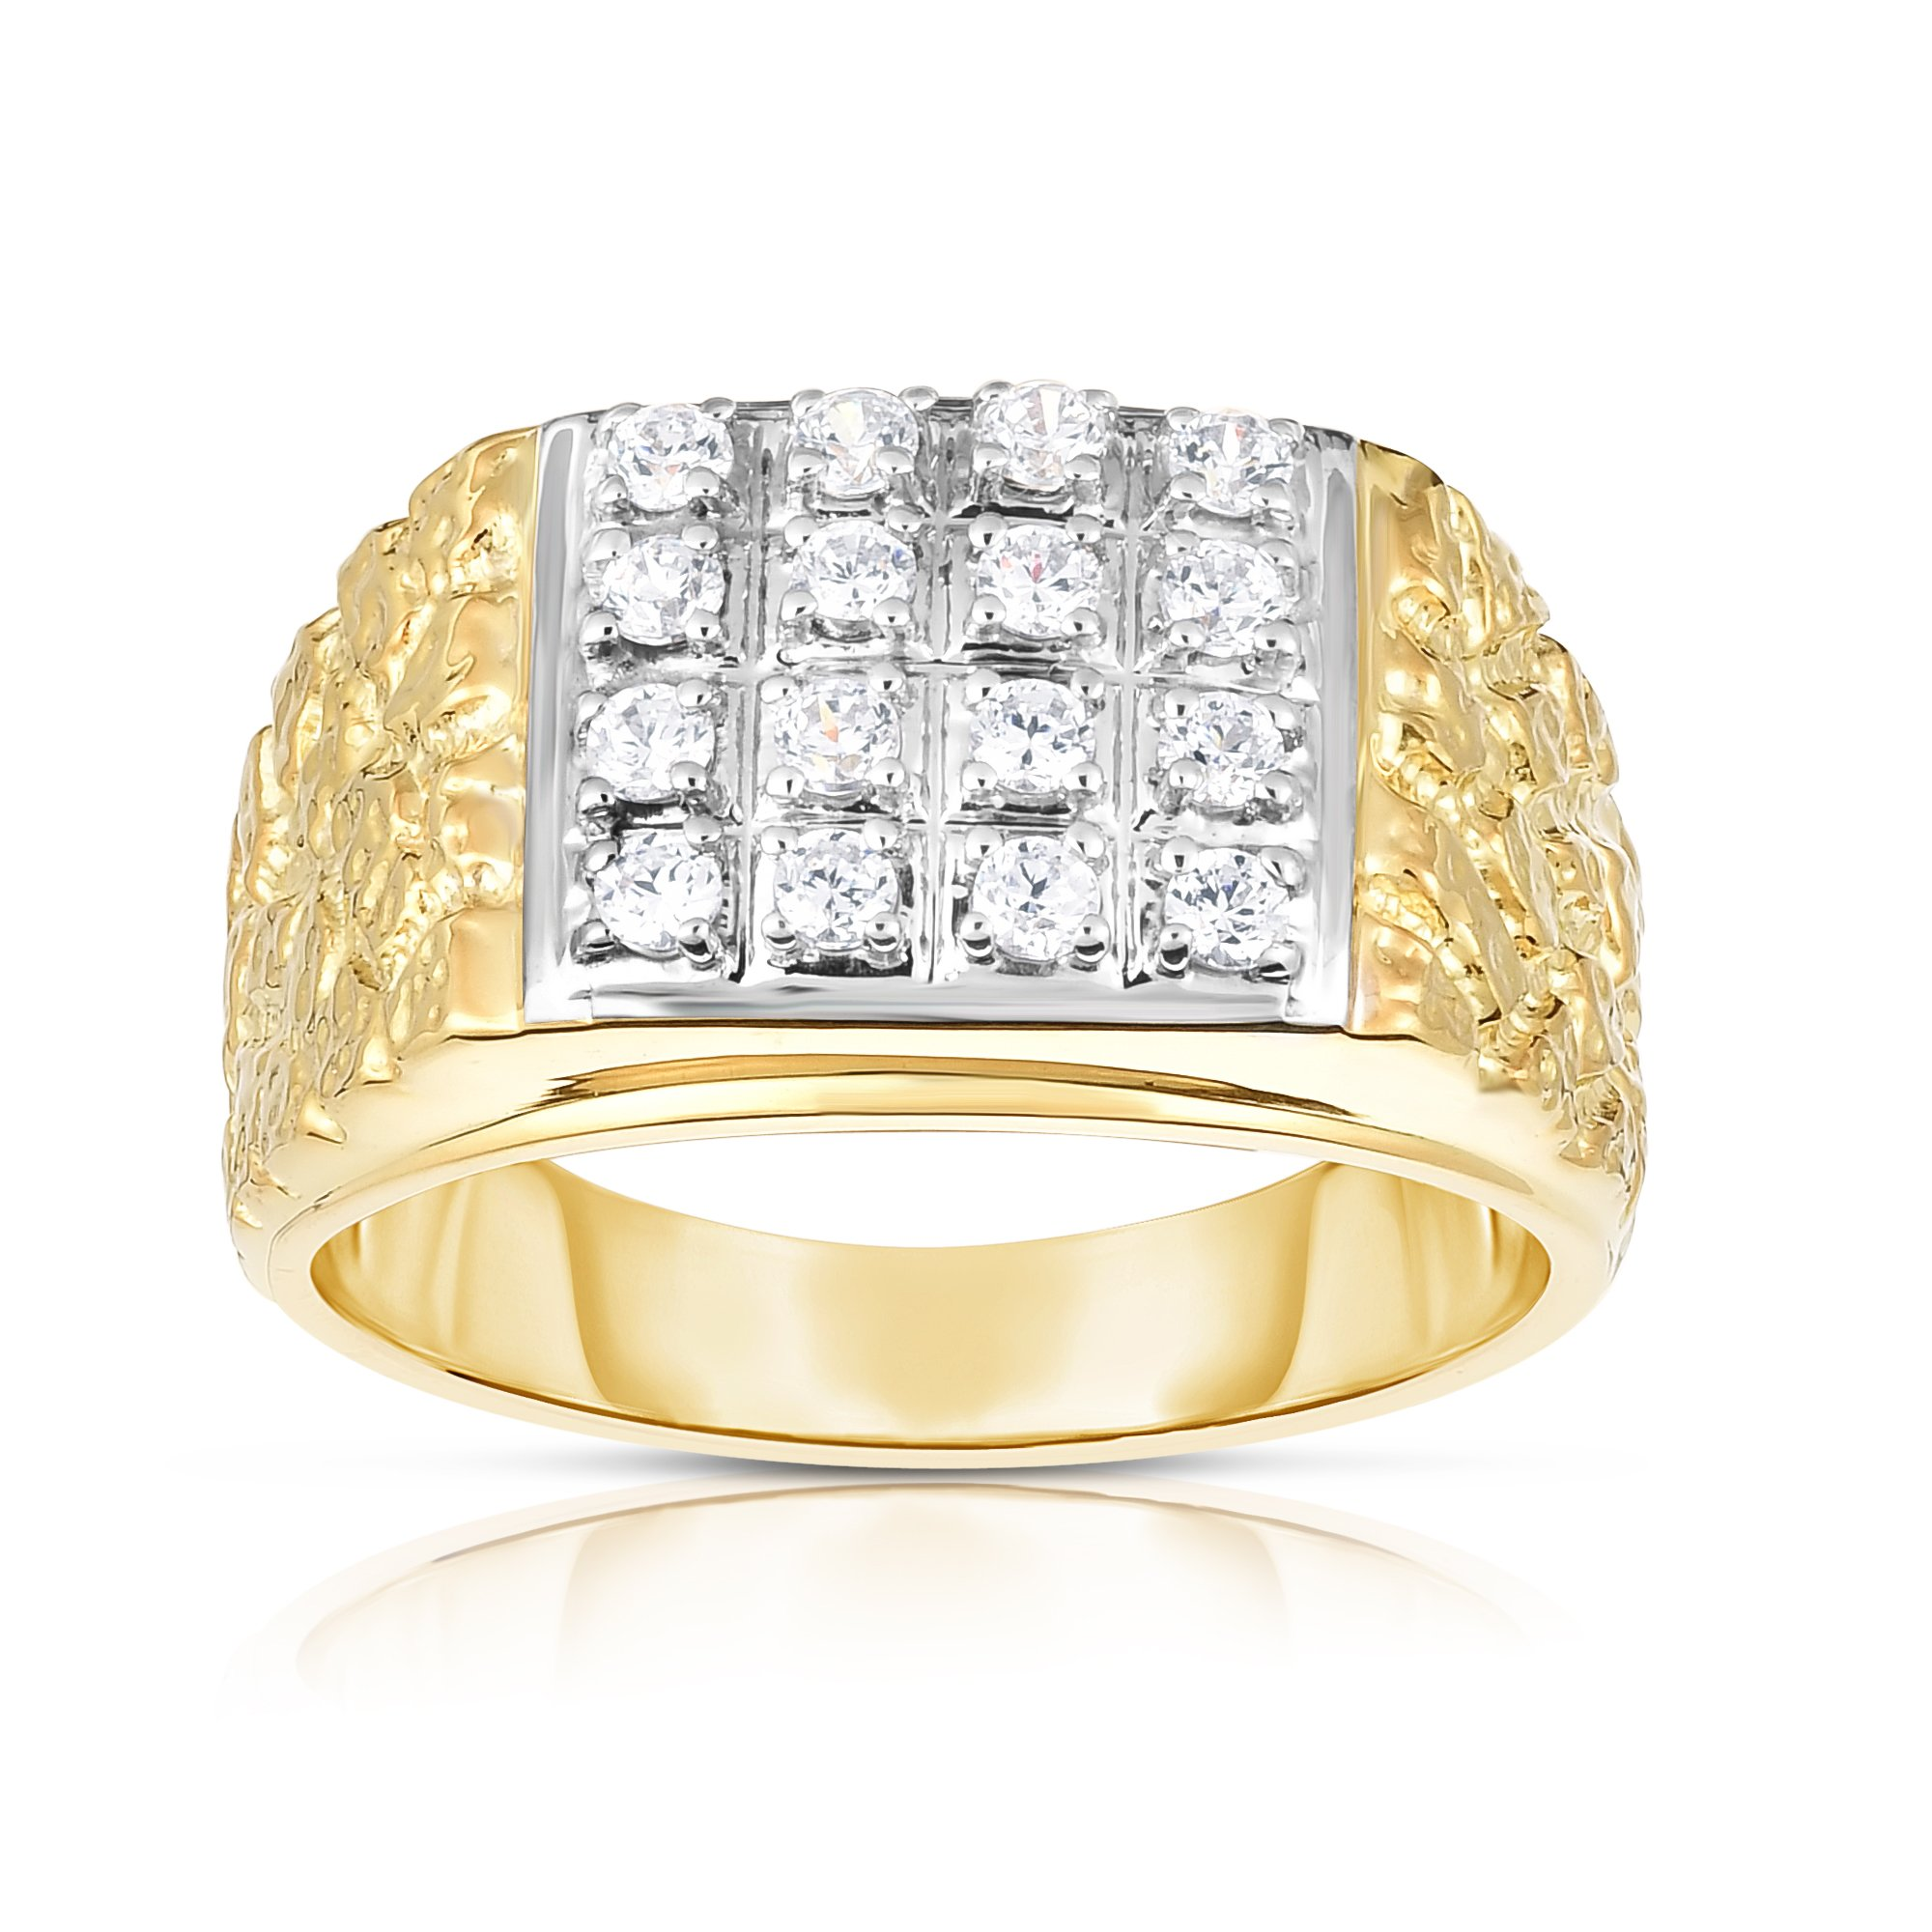 Noray Designs 14K Gold Diamond (0.50 Ct, I1-I2 Clarity, G-H Color) Men's Ring